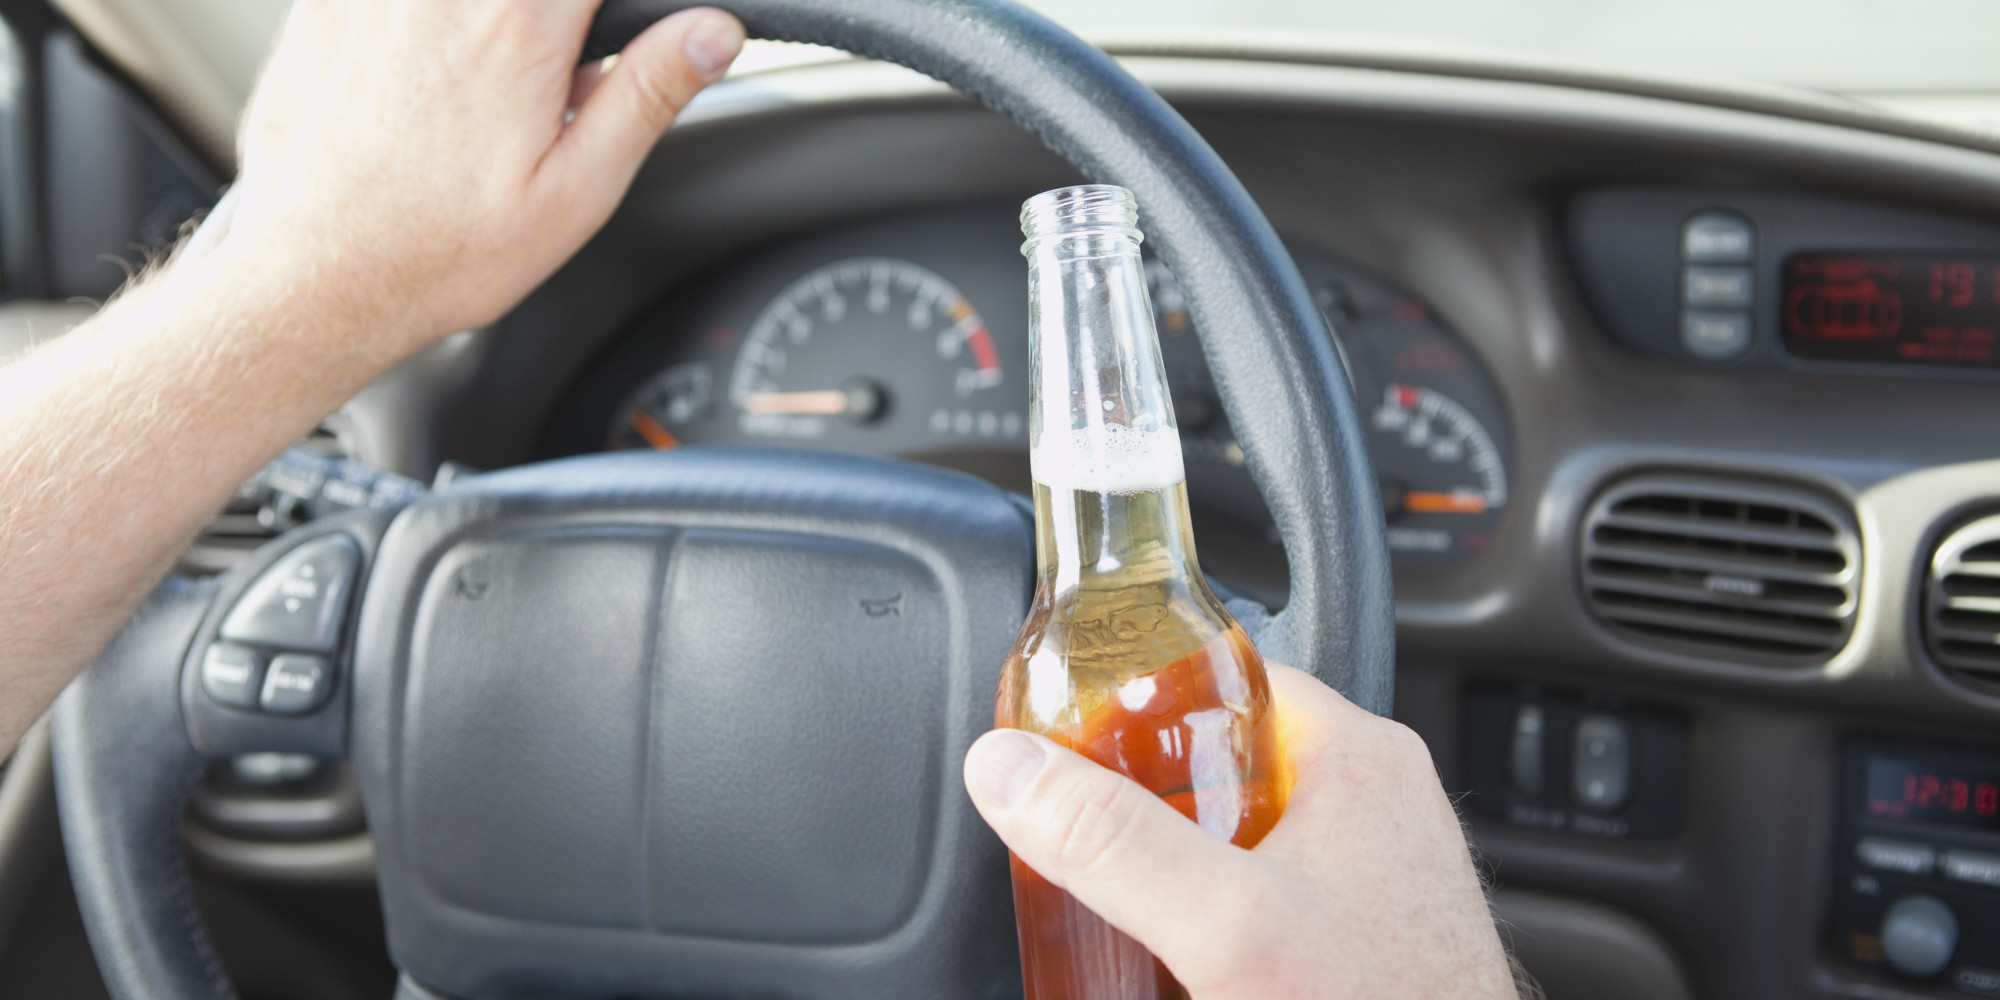 teenage drinking driving essays You have not saved any essays teenage drinking and driving has gotten out of control over the years done to stop more accidents from taking place i believe that reaching out to teenagers by better laws and organizations may be the most effective way to stop teenagers from getting behind the.